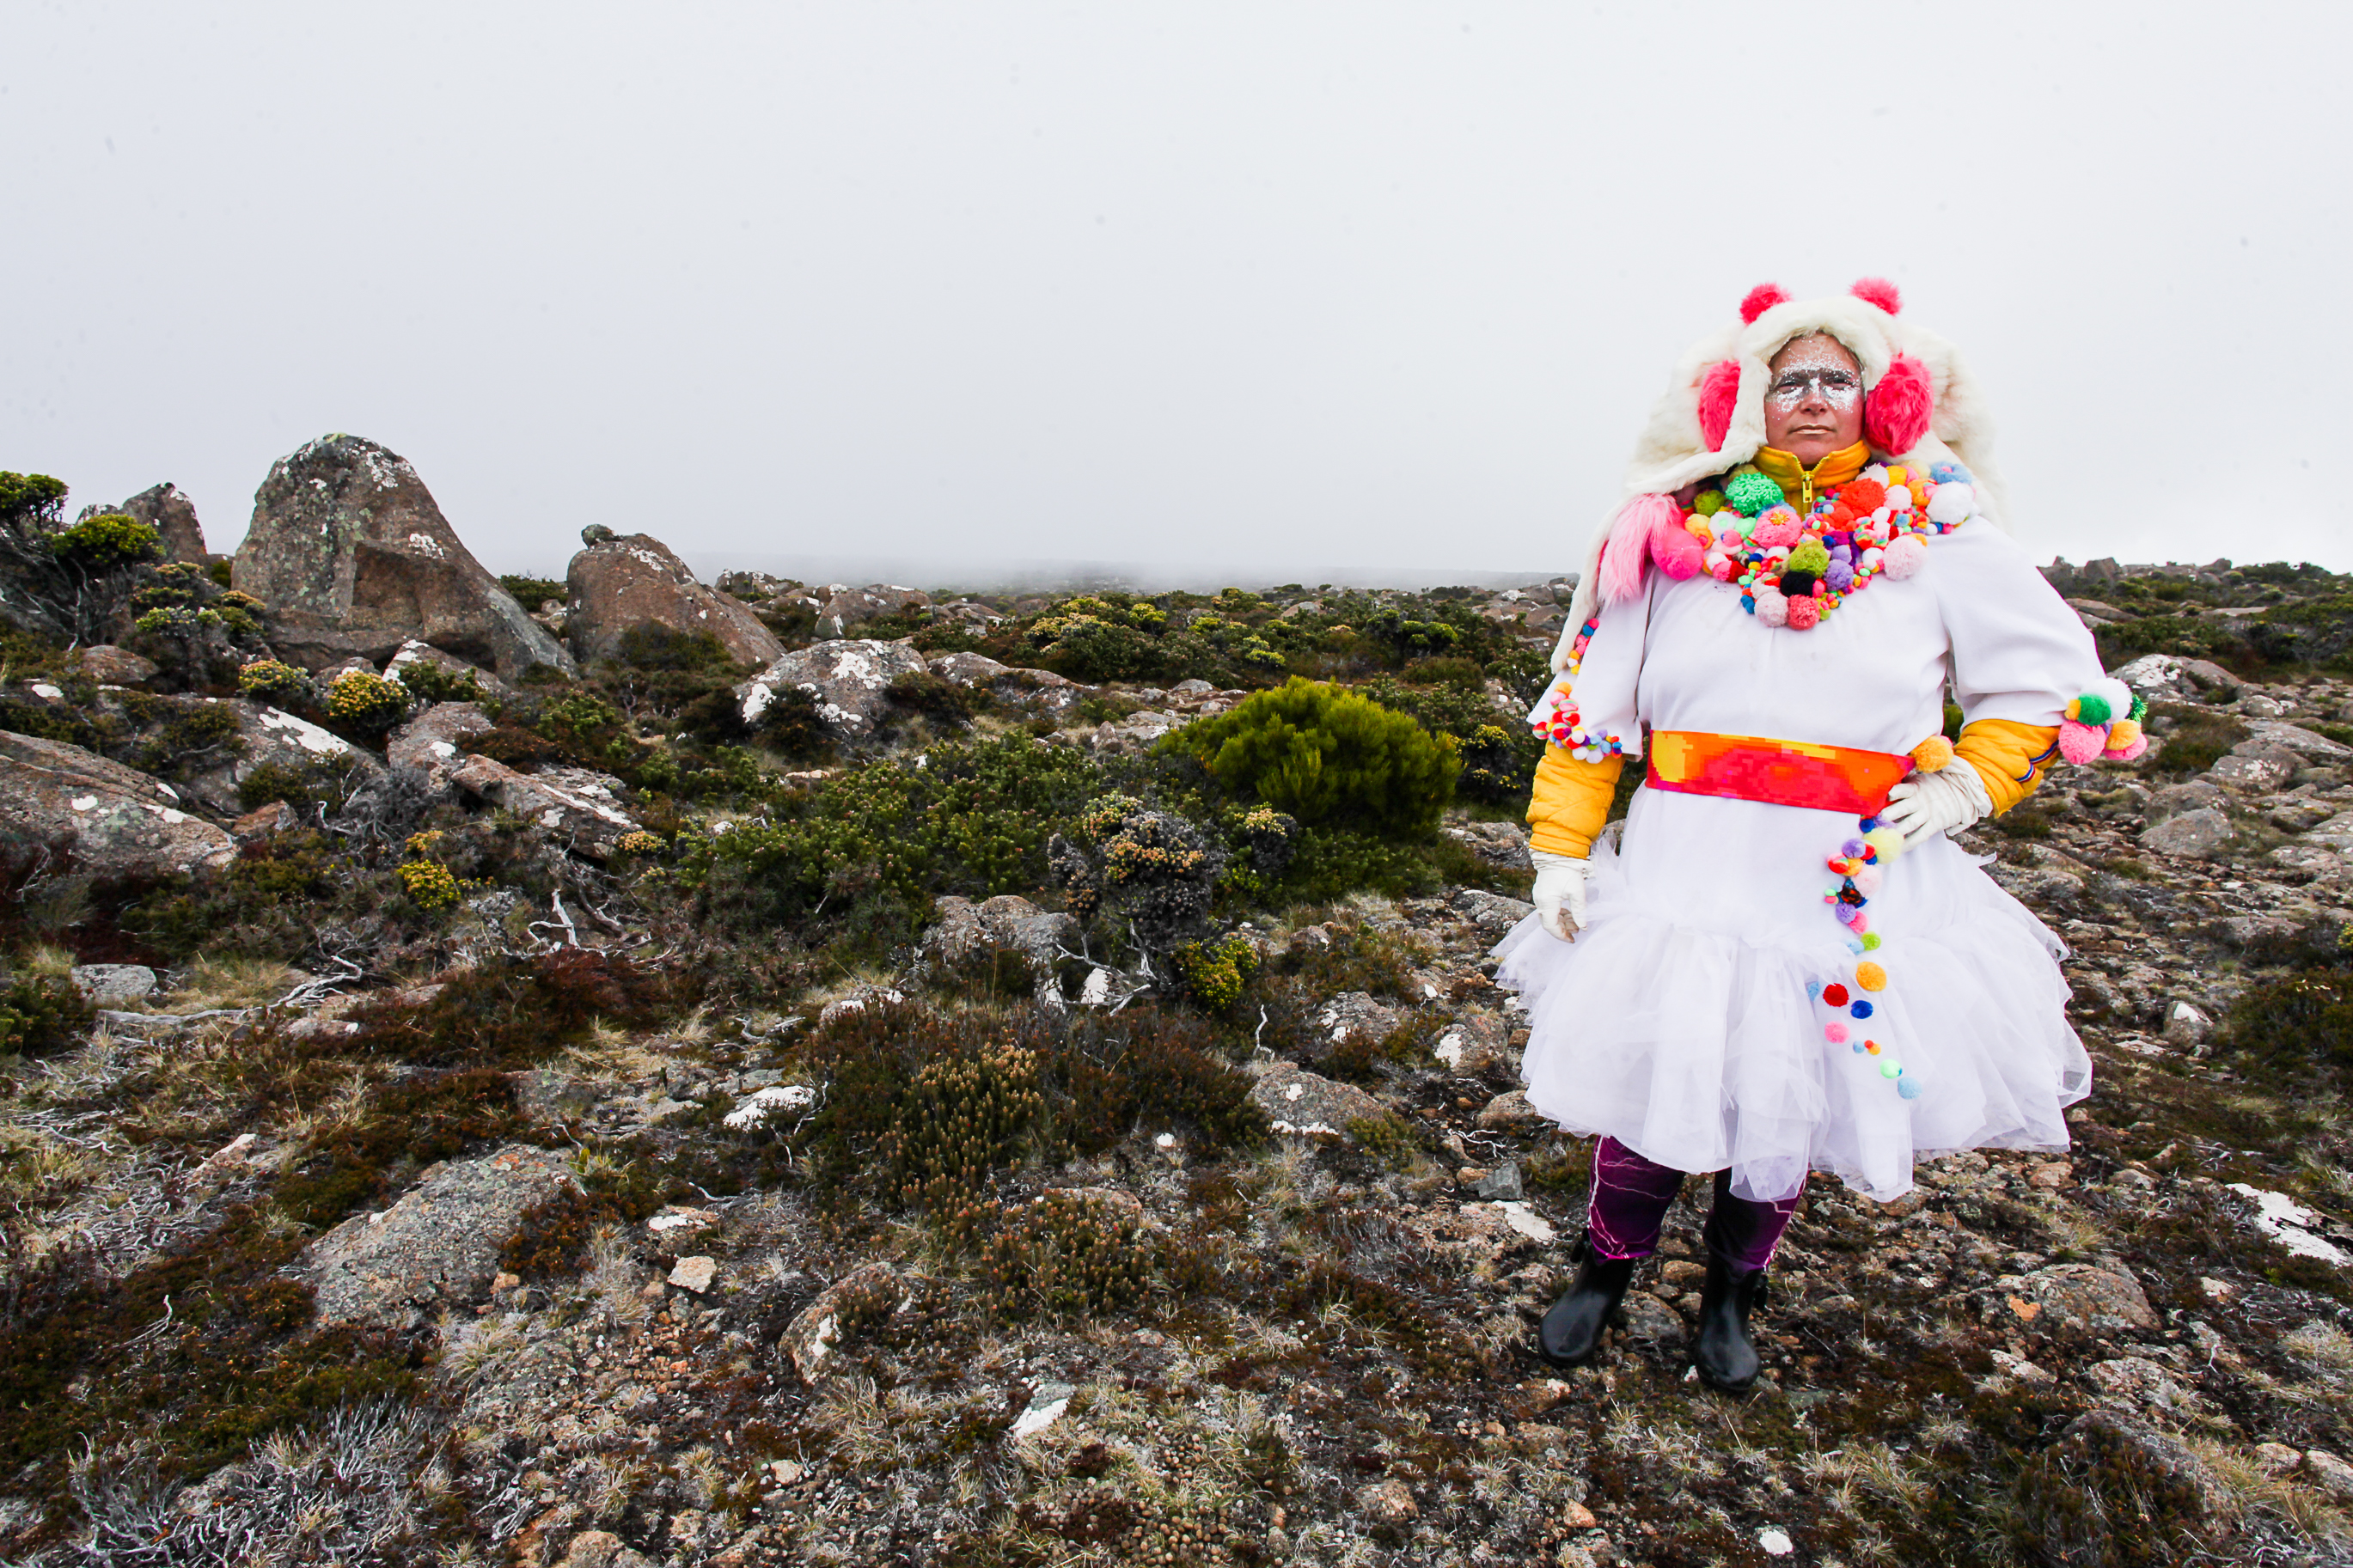 Artist Julia Drouhin atop Mt. Wellington, Hobart 2017. Photo By Lara van Raay